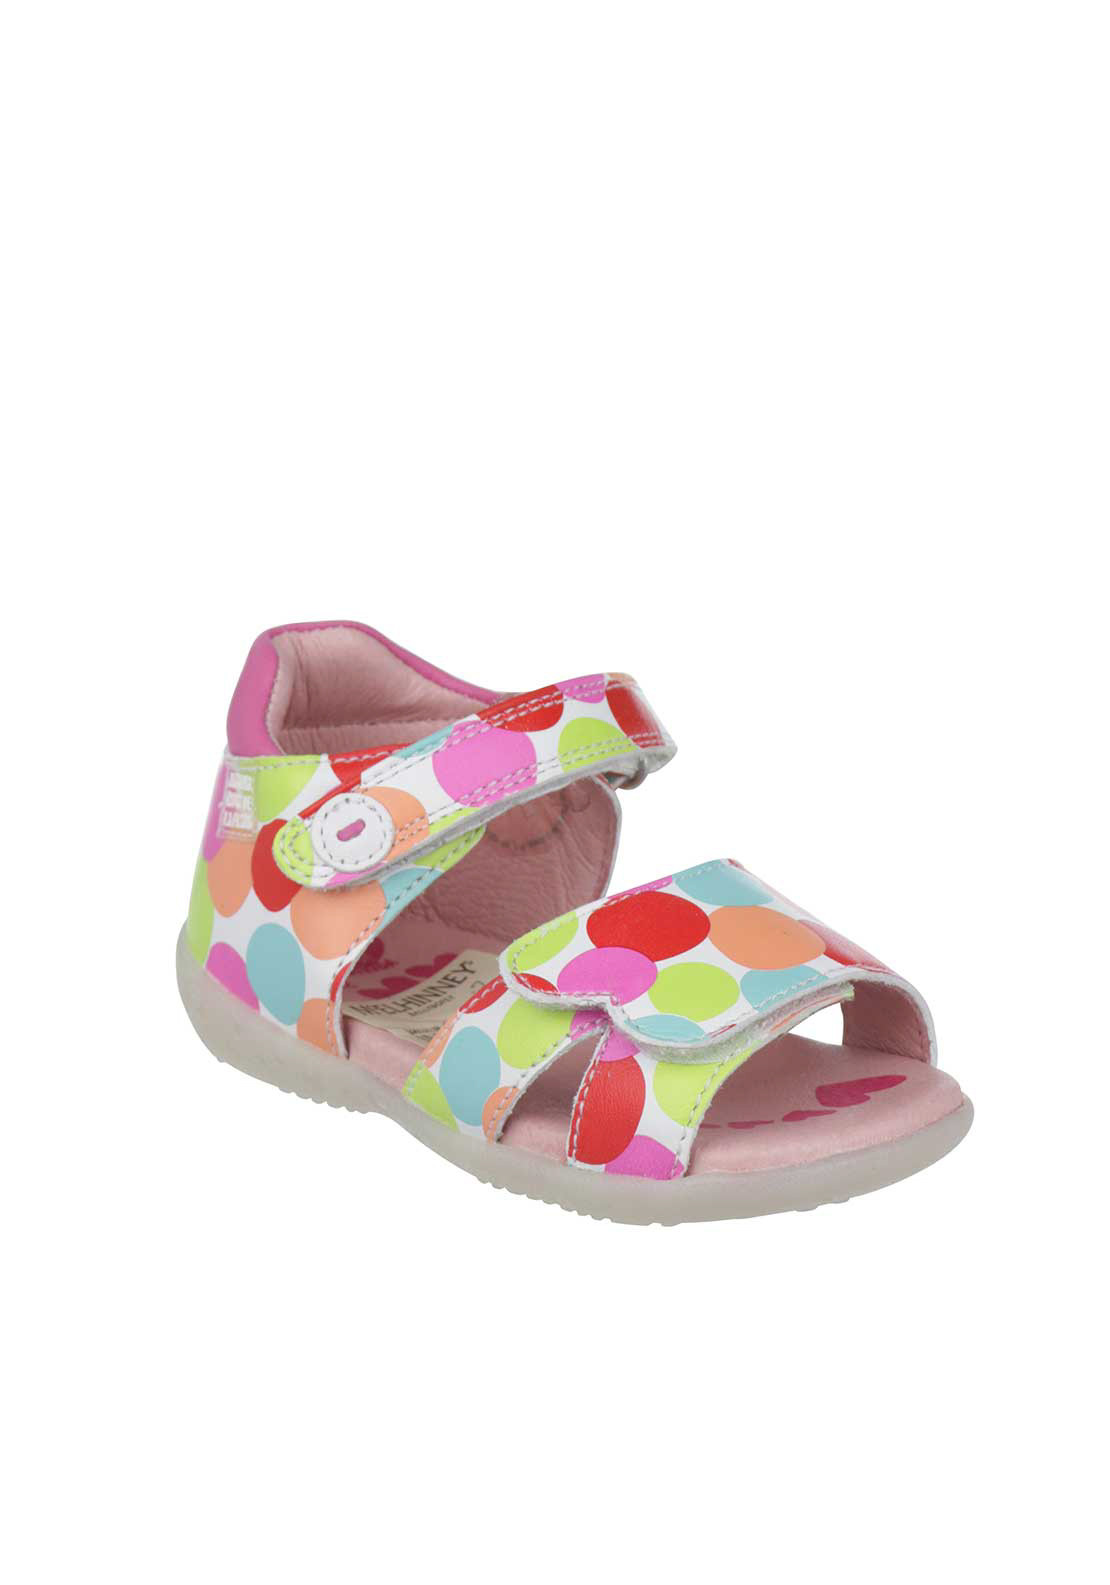 Agatha Ruiz De La Prada Girls Leather Sandal